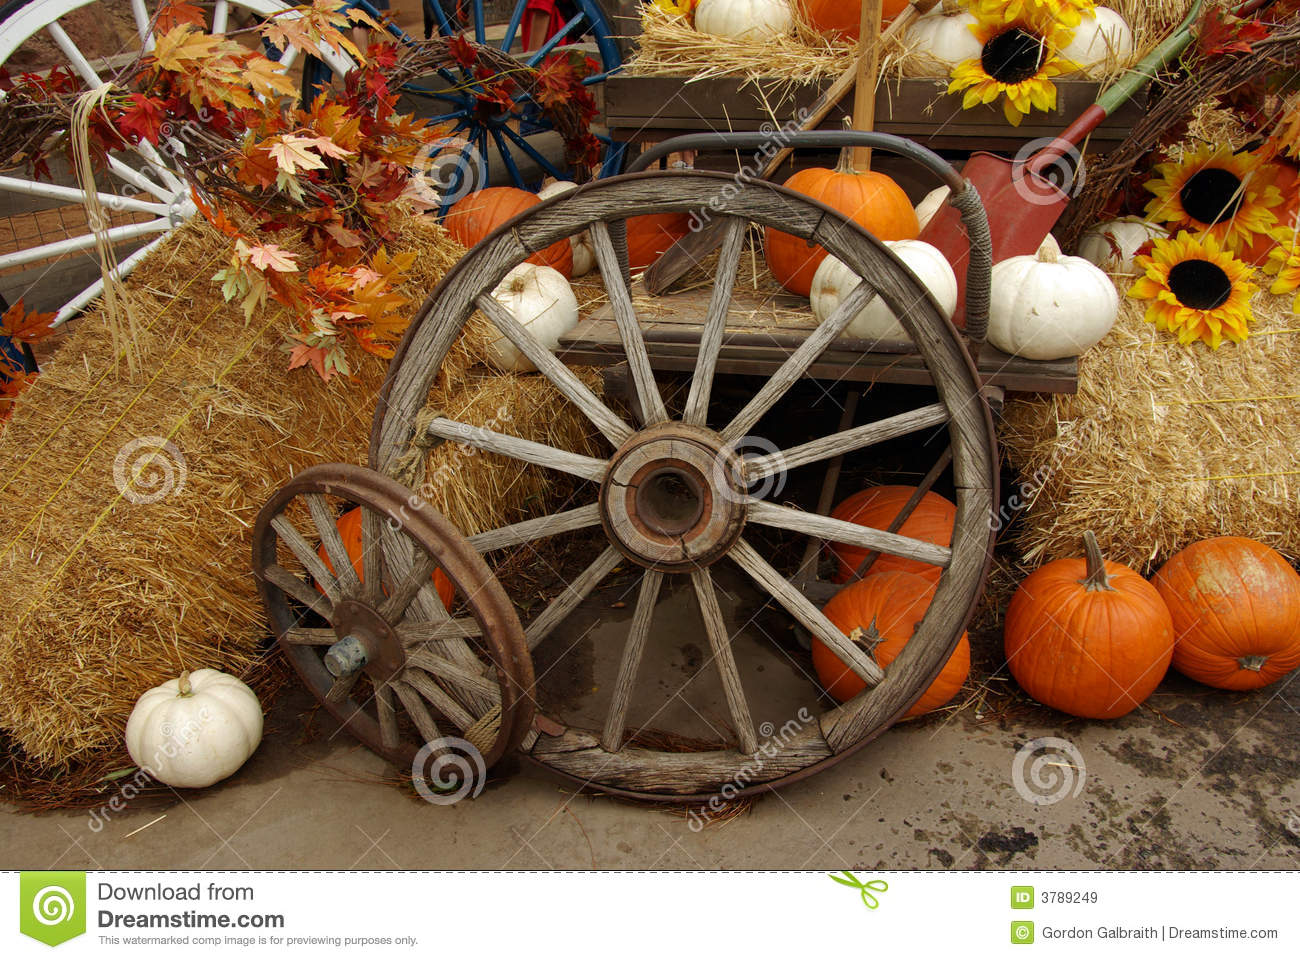 Fall Scenes Wallpaper With Pumpkins Harvest Scene Stock Image Image Of Vintage Fall Wagon